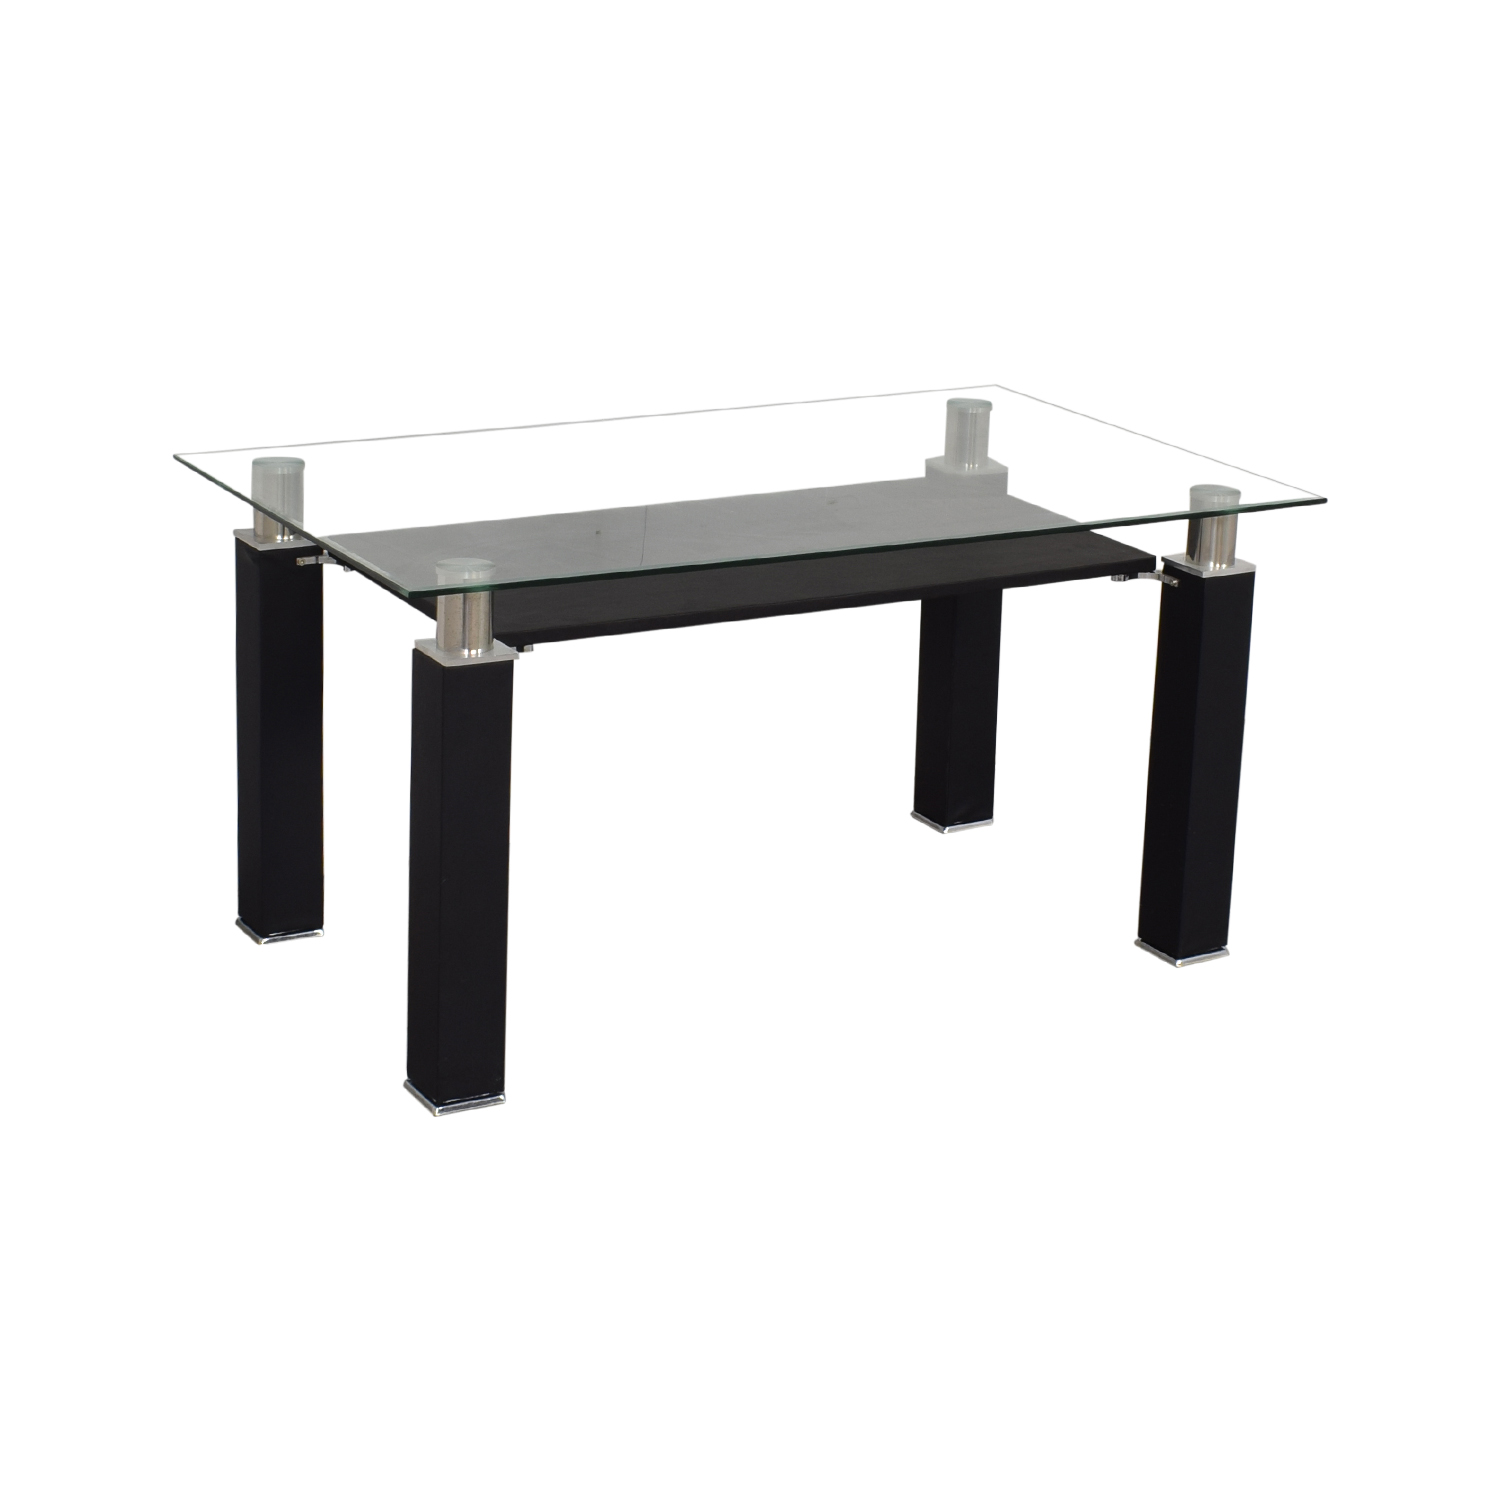 Acme Acme Furniture Modern Glass Dining Table for sale